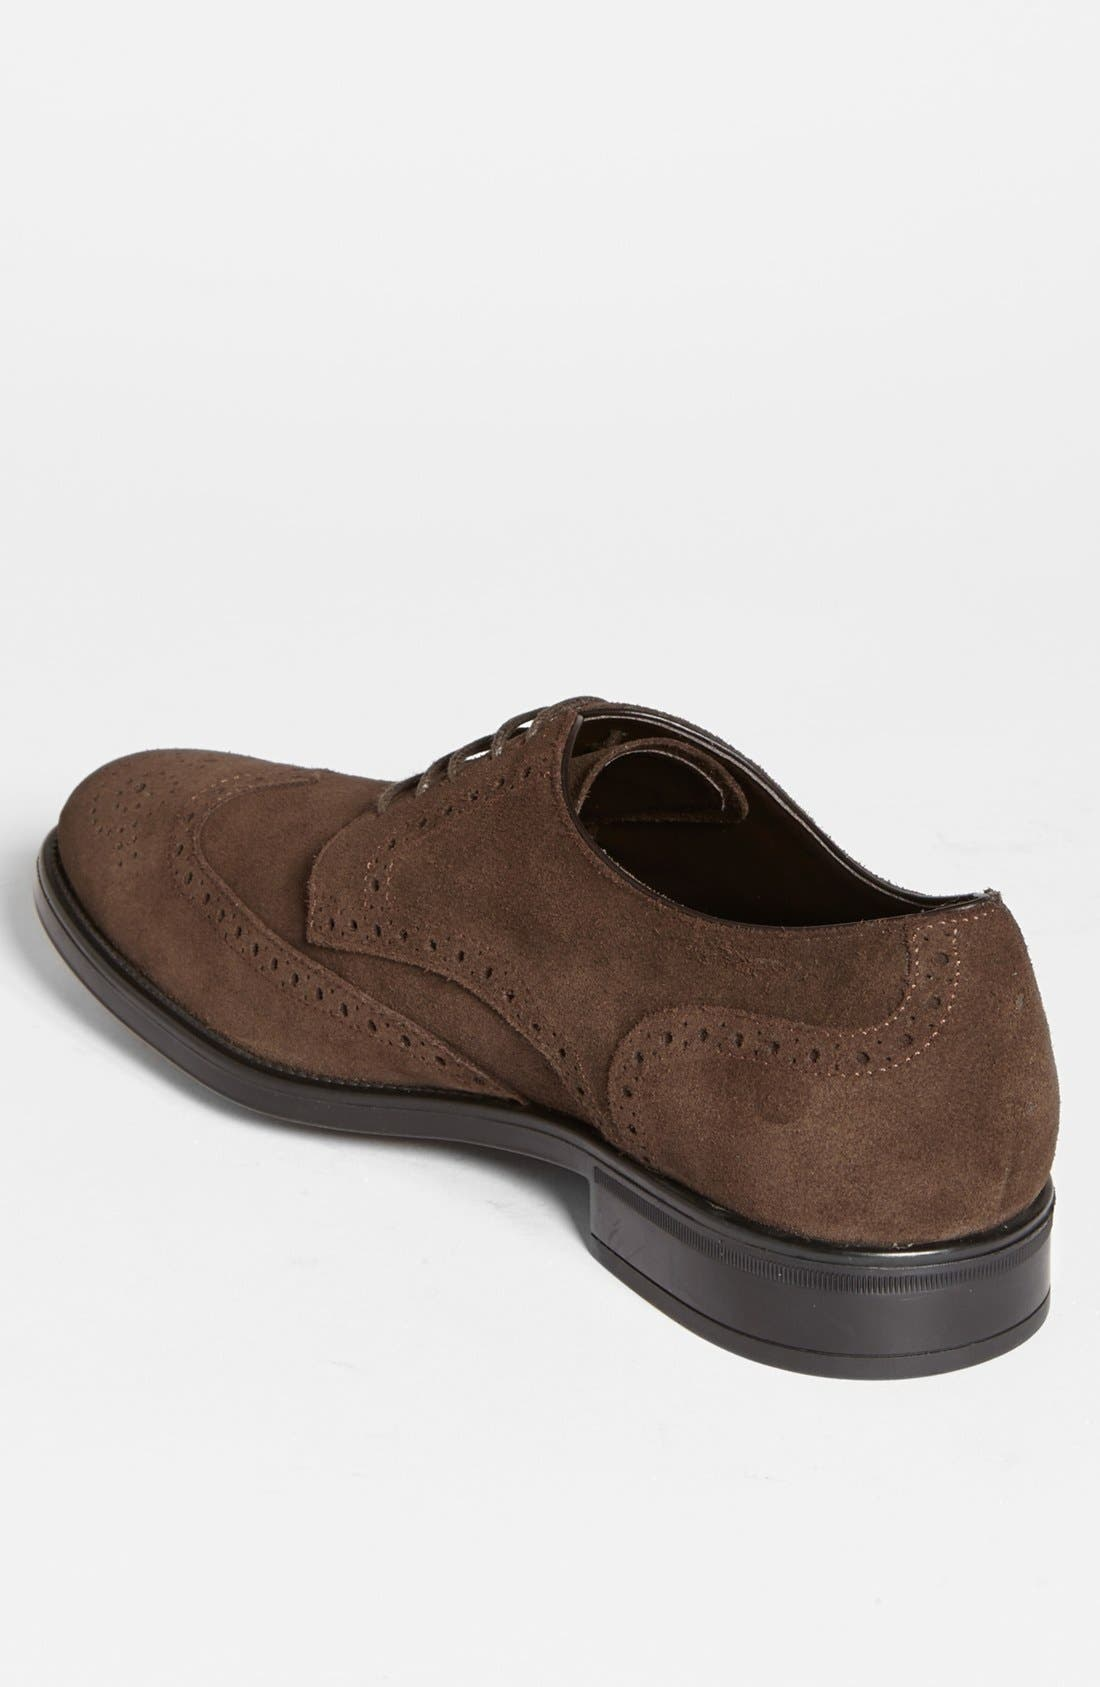 Alternate Image 2  - Tod's 'Derby' Suede Wingtip